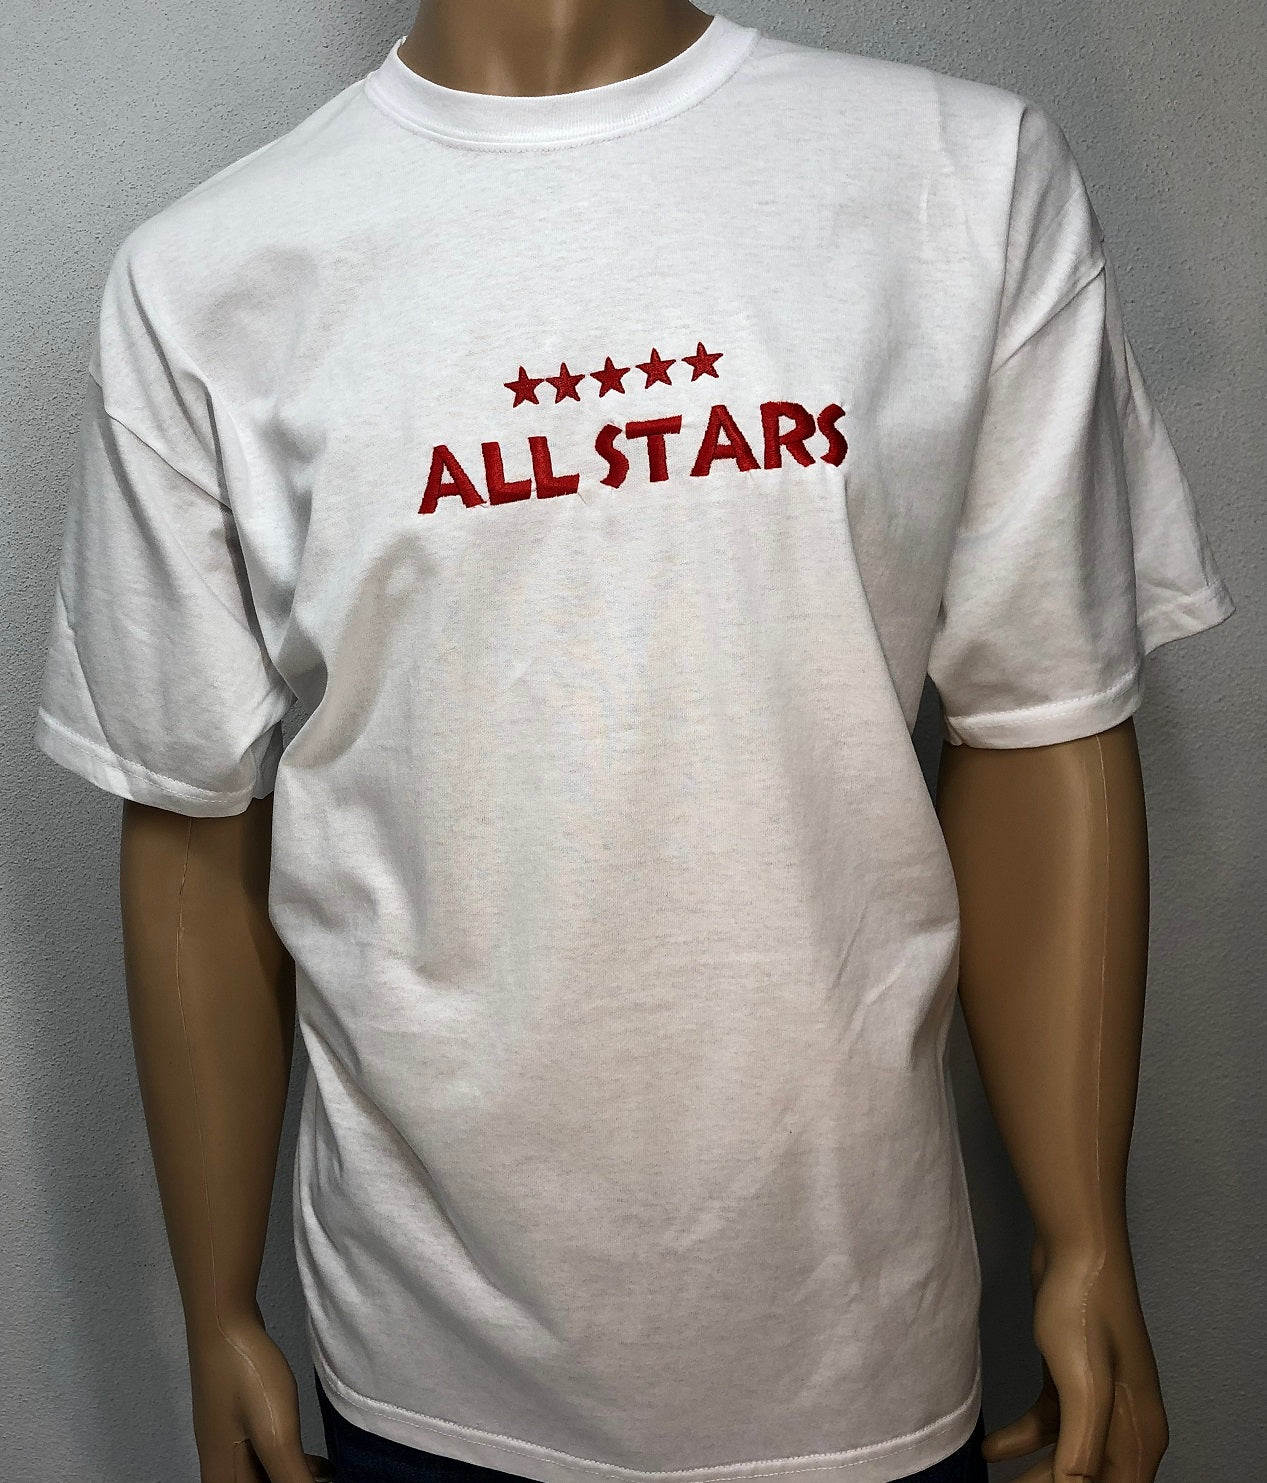 All stars 👕 Embroidered text T-shirt